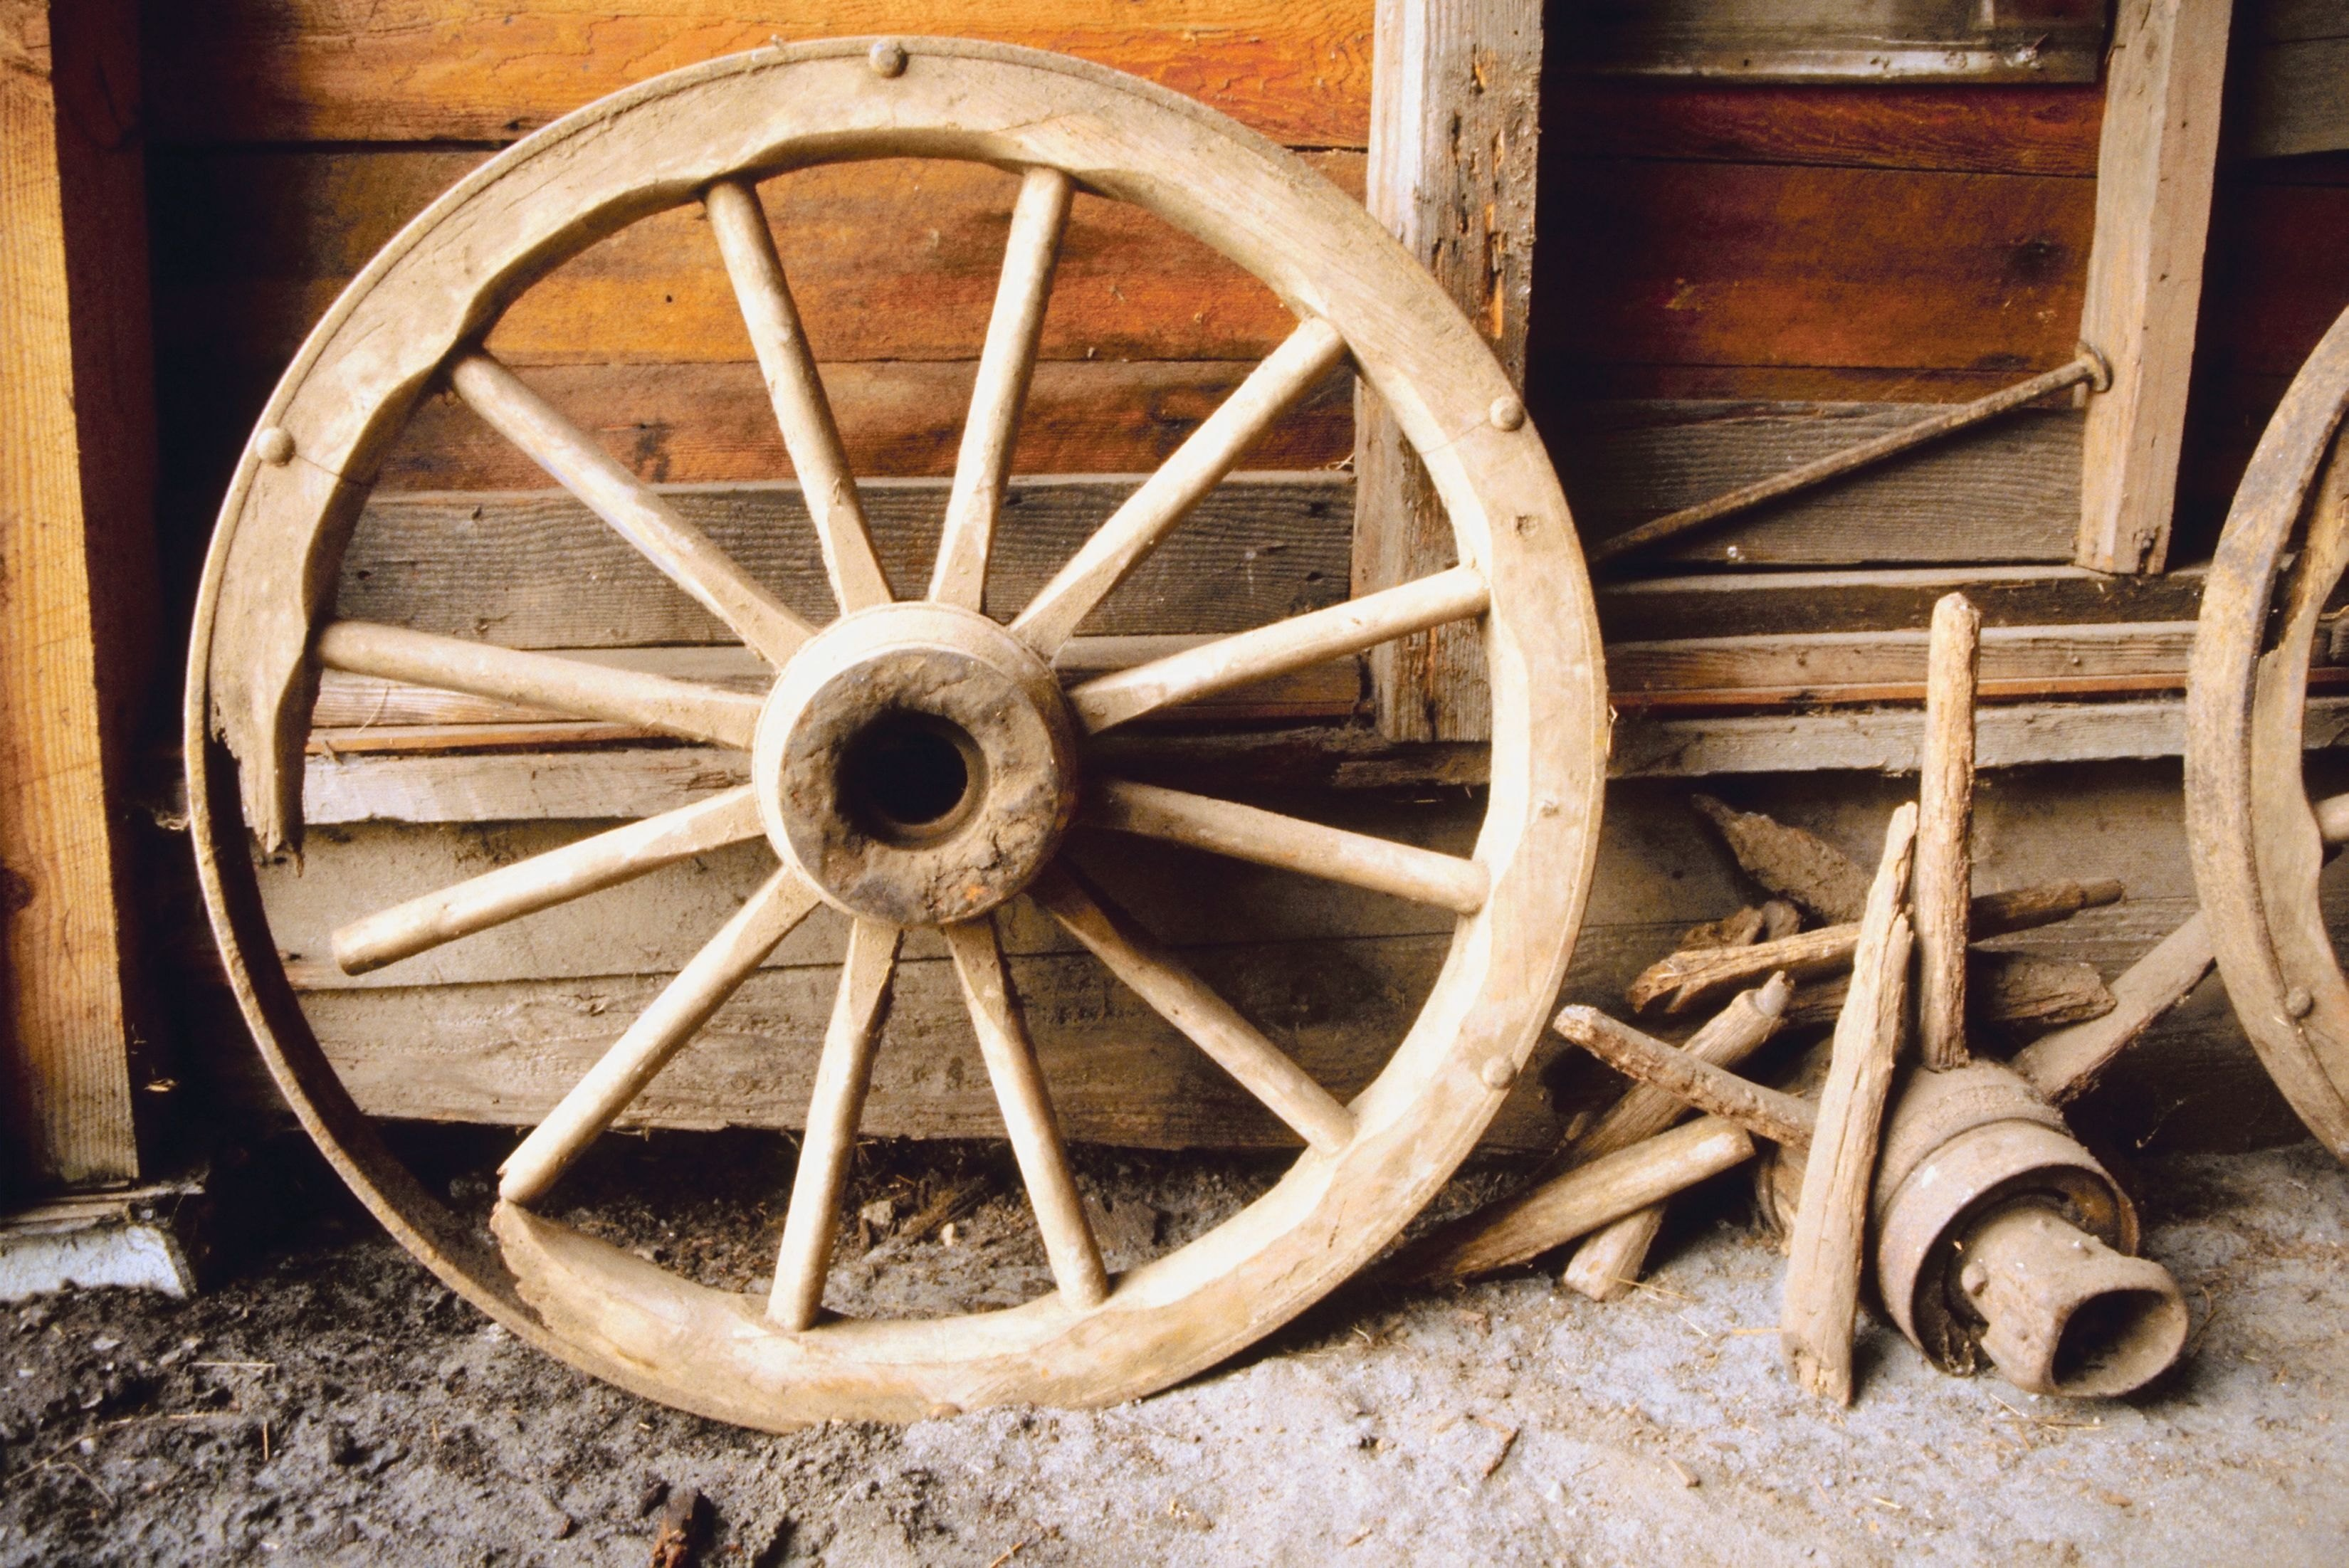 How to Make a Replica Wagon Wheel